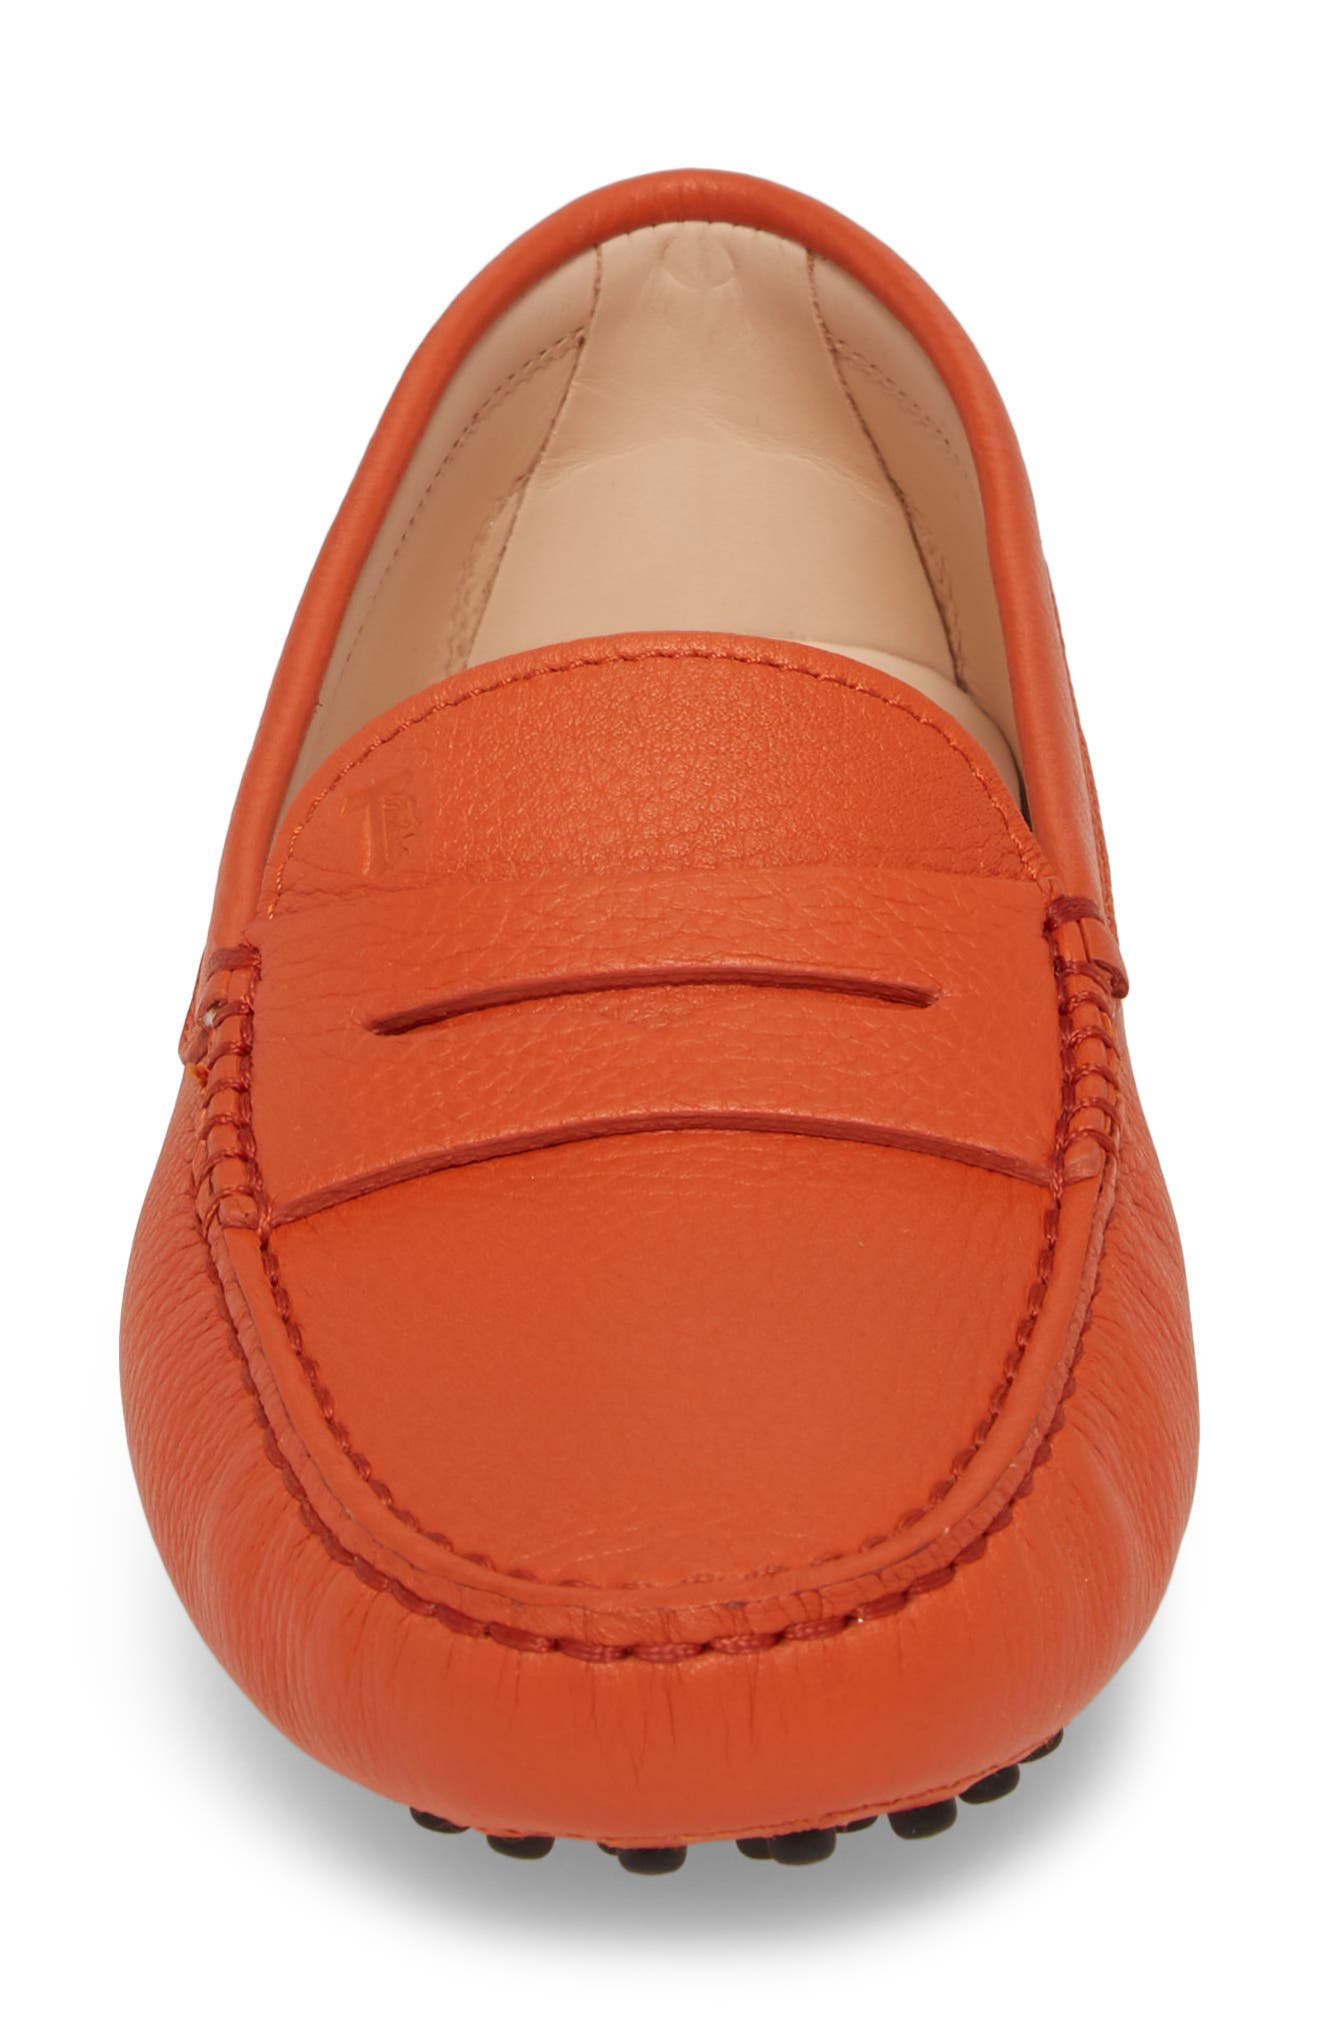 'Gommini' Driving Moccasin,                             Alternate thumbnail 6, color,                             Orange Brick